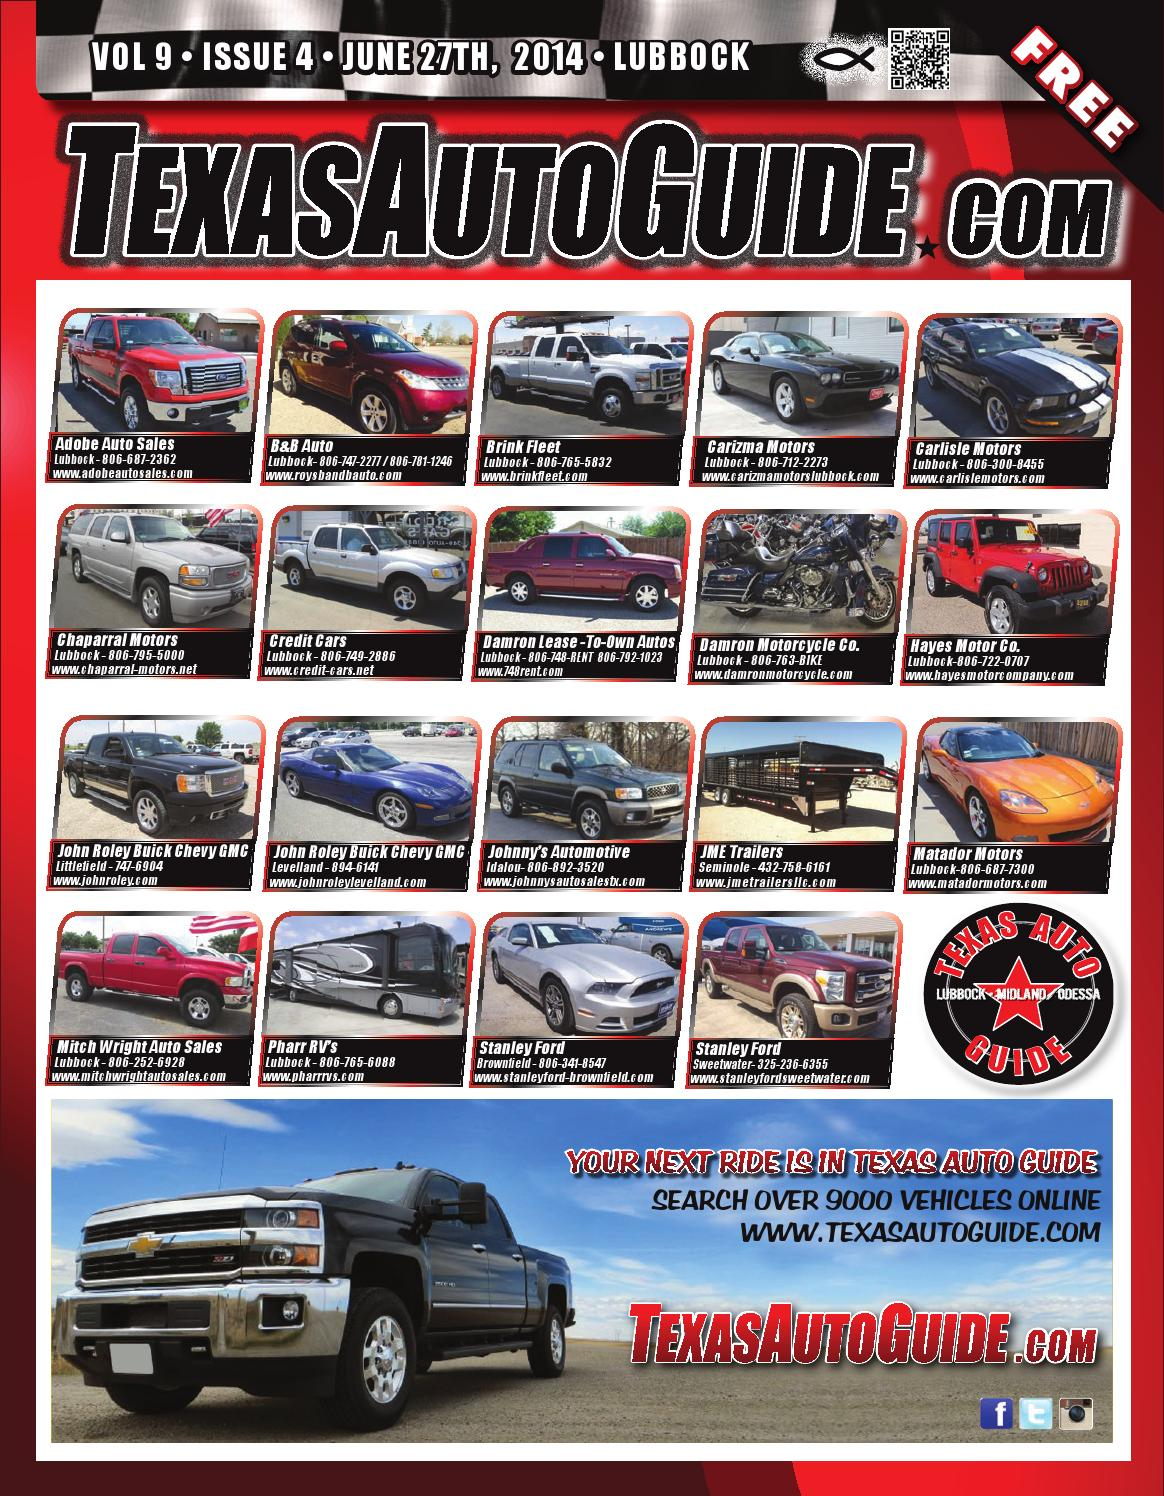 Texas auto guide lubbock june 27th 2014 by texas auto for Carizma motors lubbock tx